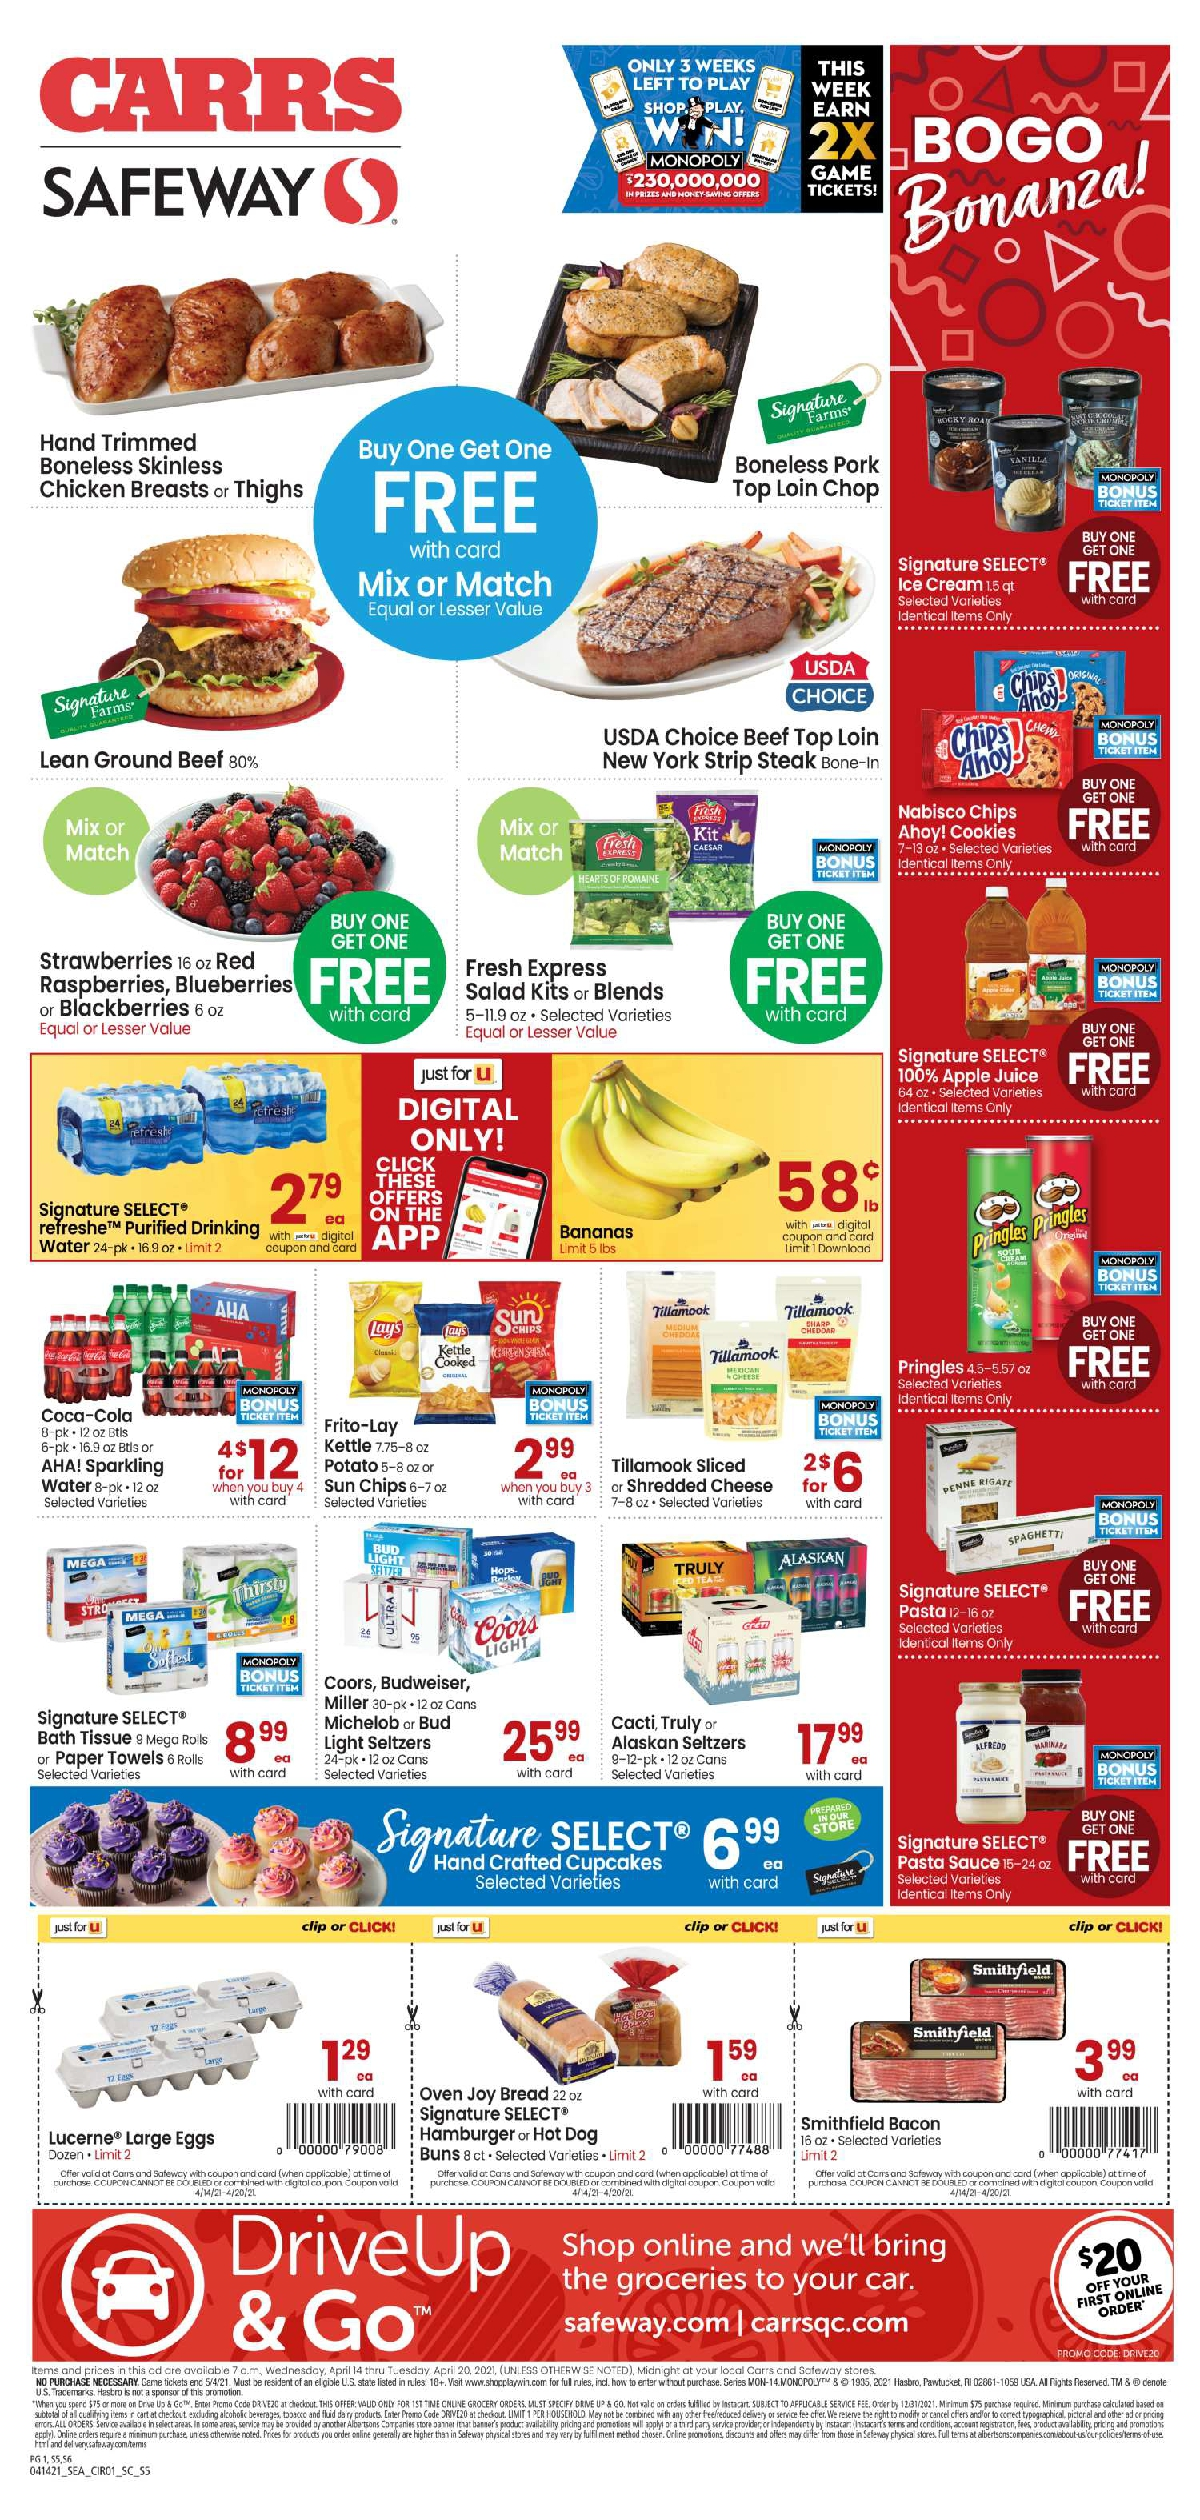 Carrs Anchorage Weekly Ad 4/14/21 – 4/20/21 Sneak Peek Preview